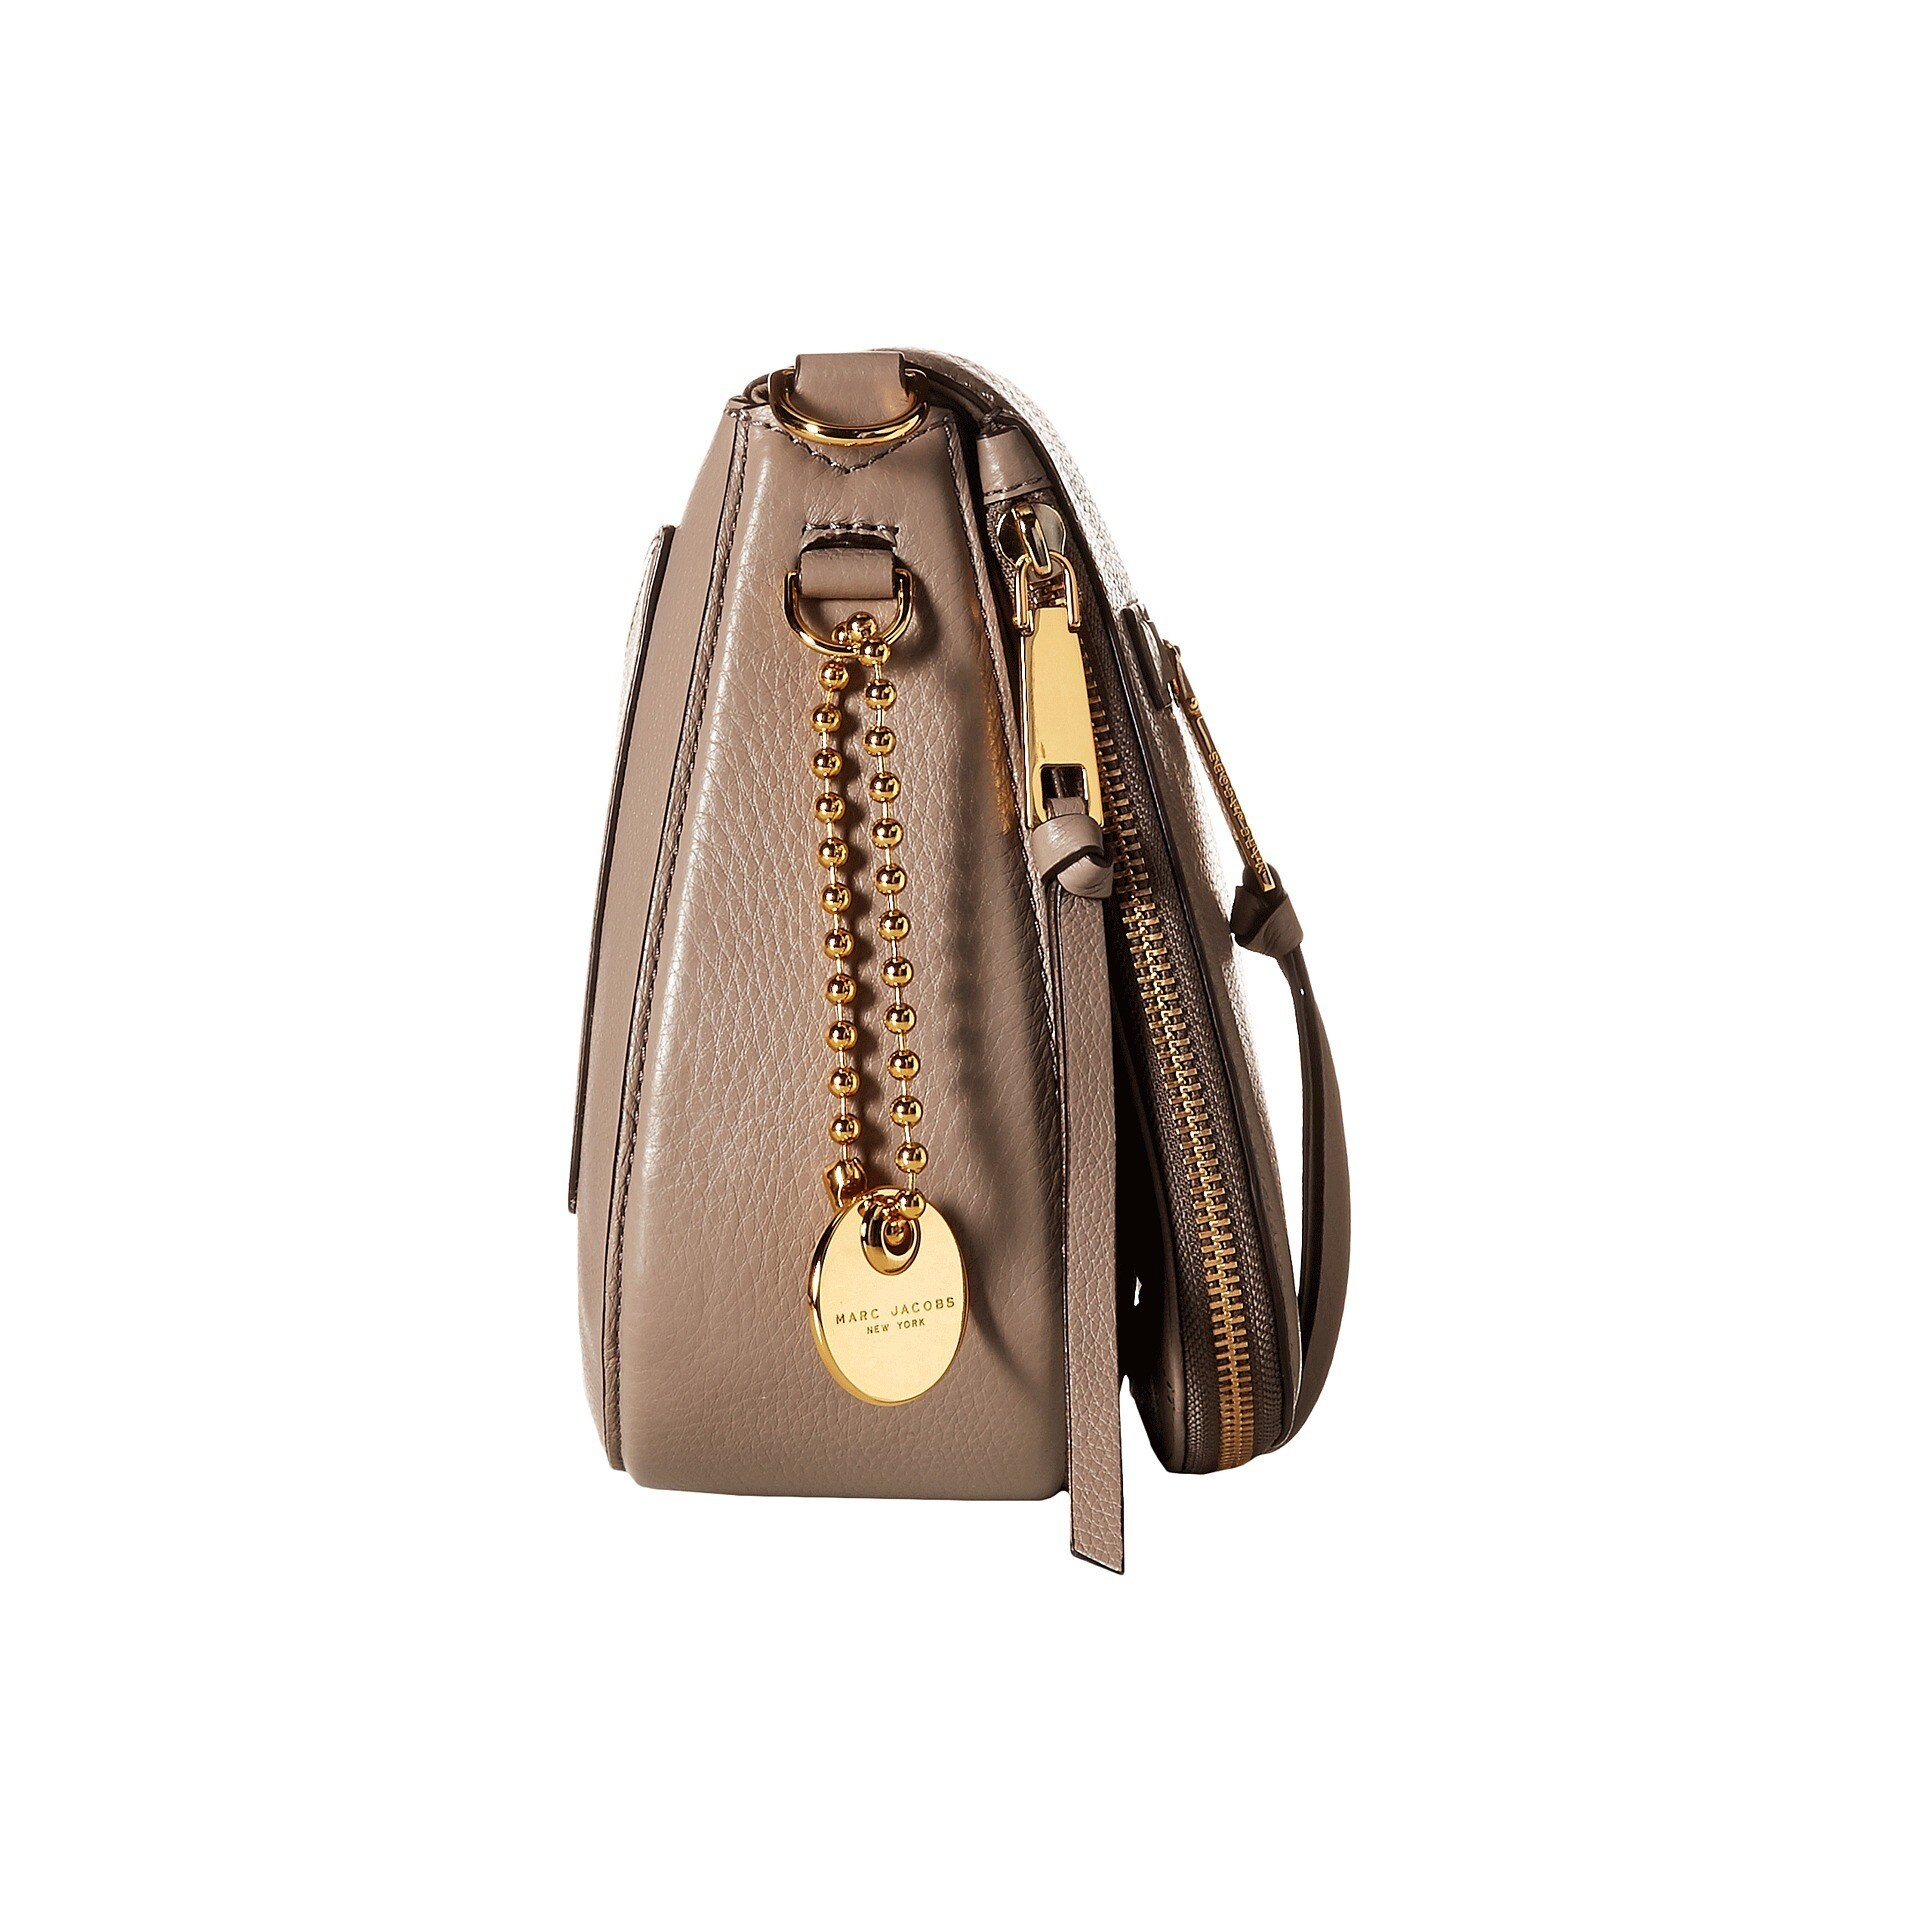 55e28820eafb Shop Marc Jacobs Women s Recruit Mink Beige Leather Saddle Handbag - Free  Shipping Today - Overstock - 13455385